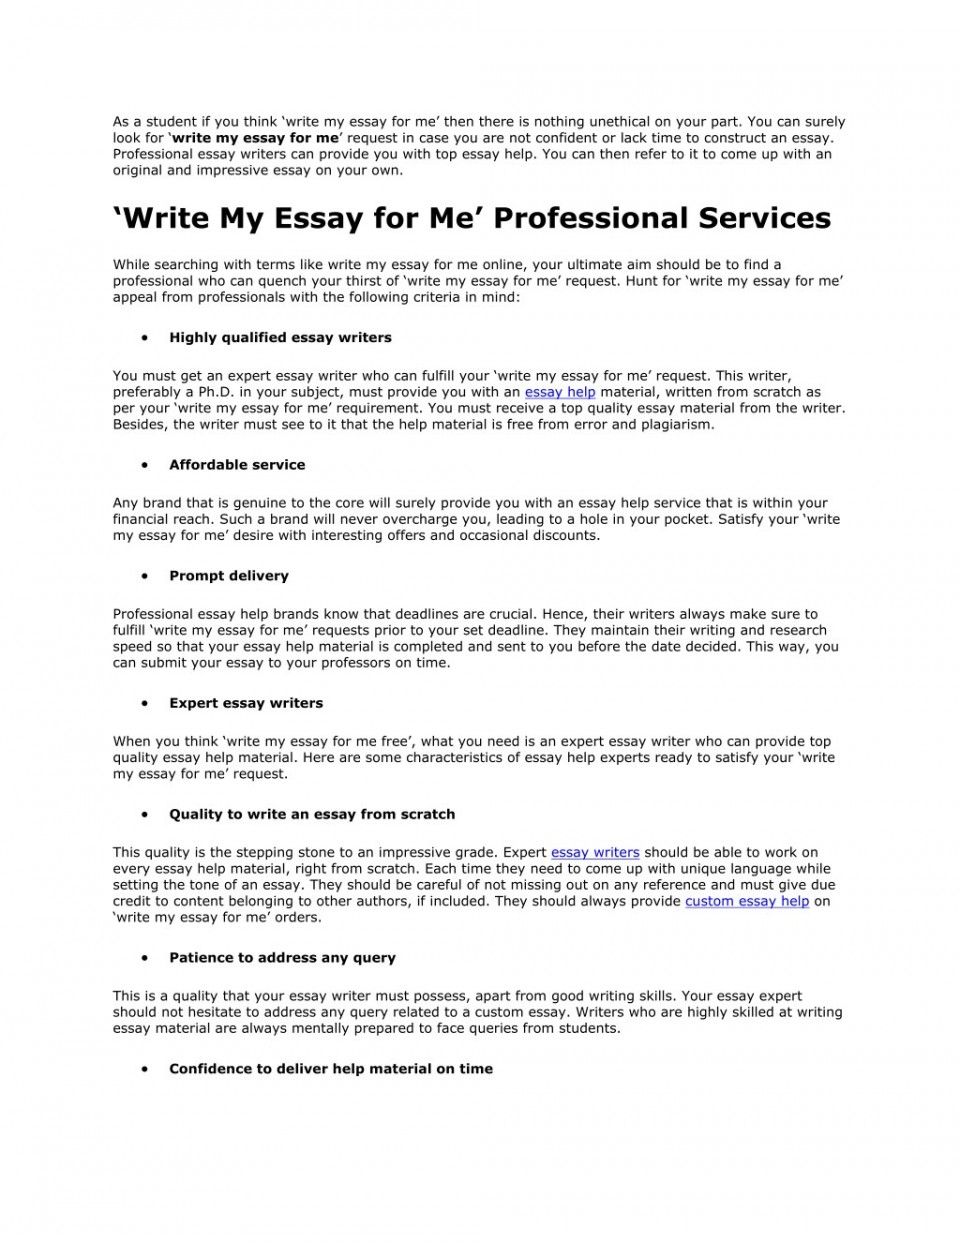 017 Write My Essay For Me Example As Student If You Think Surprising Free Canada Online 960